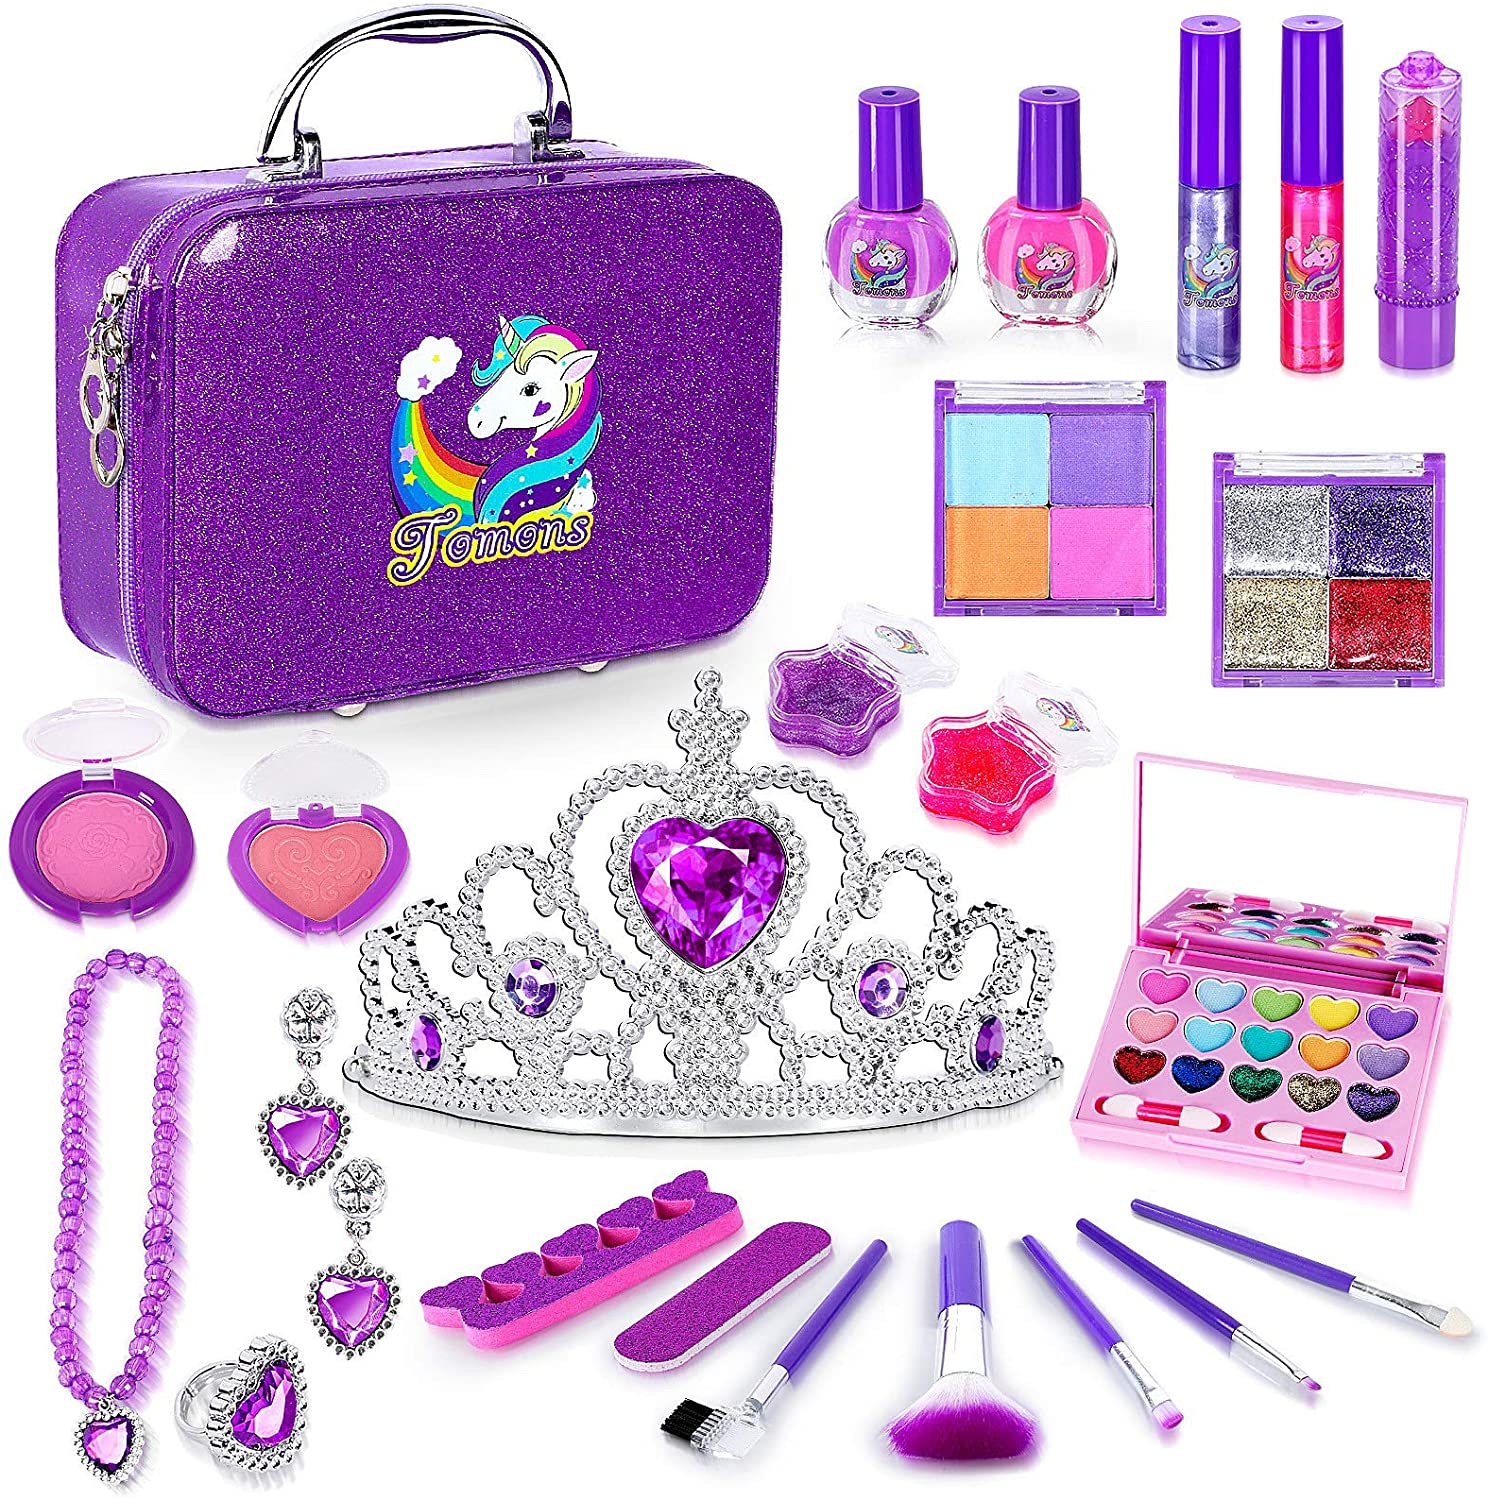 Tomons 25Pcs Kids Makeup Kit for Girls,Kids Play Washable Makeup Set Toys for Girls Safe & Non-Toxic,Real Cosmetic Beauty Set for Kids Play Game: Toys & Games